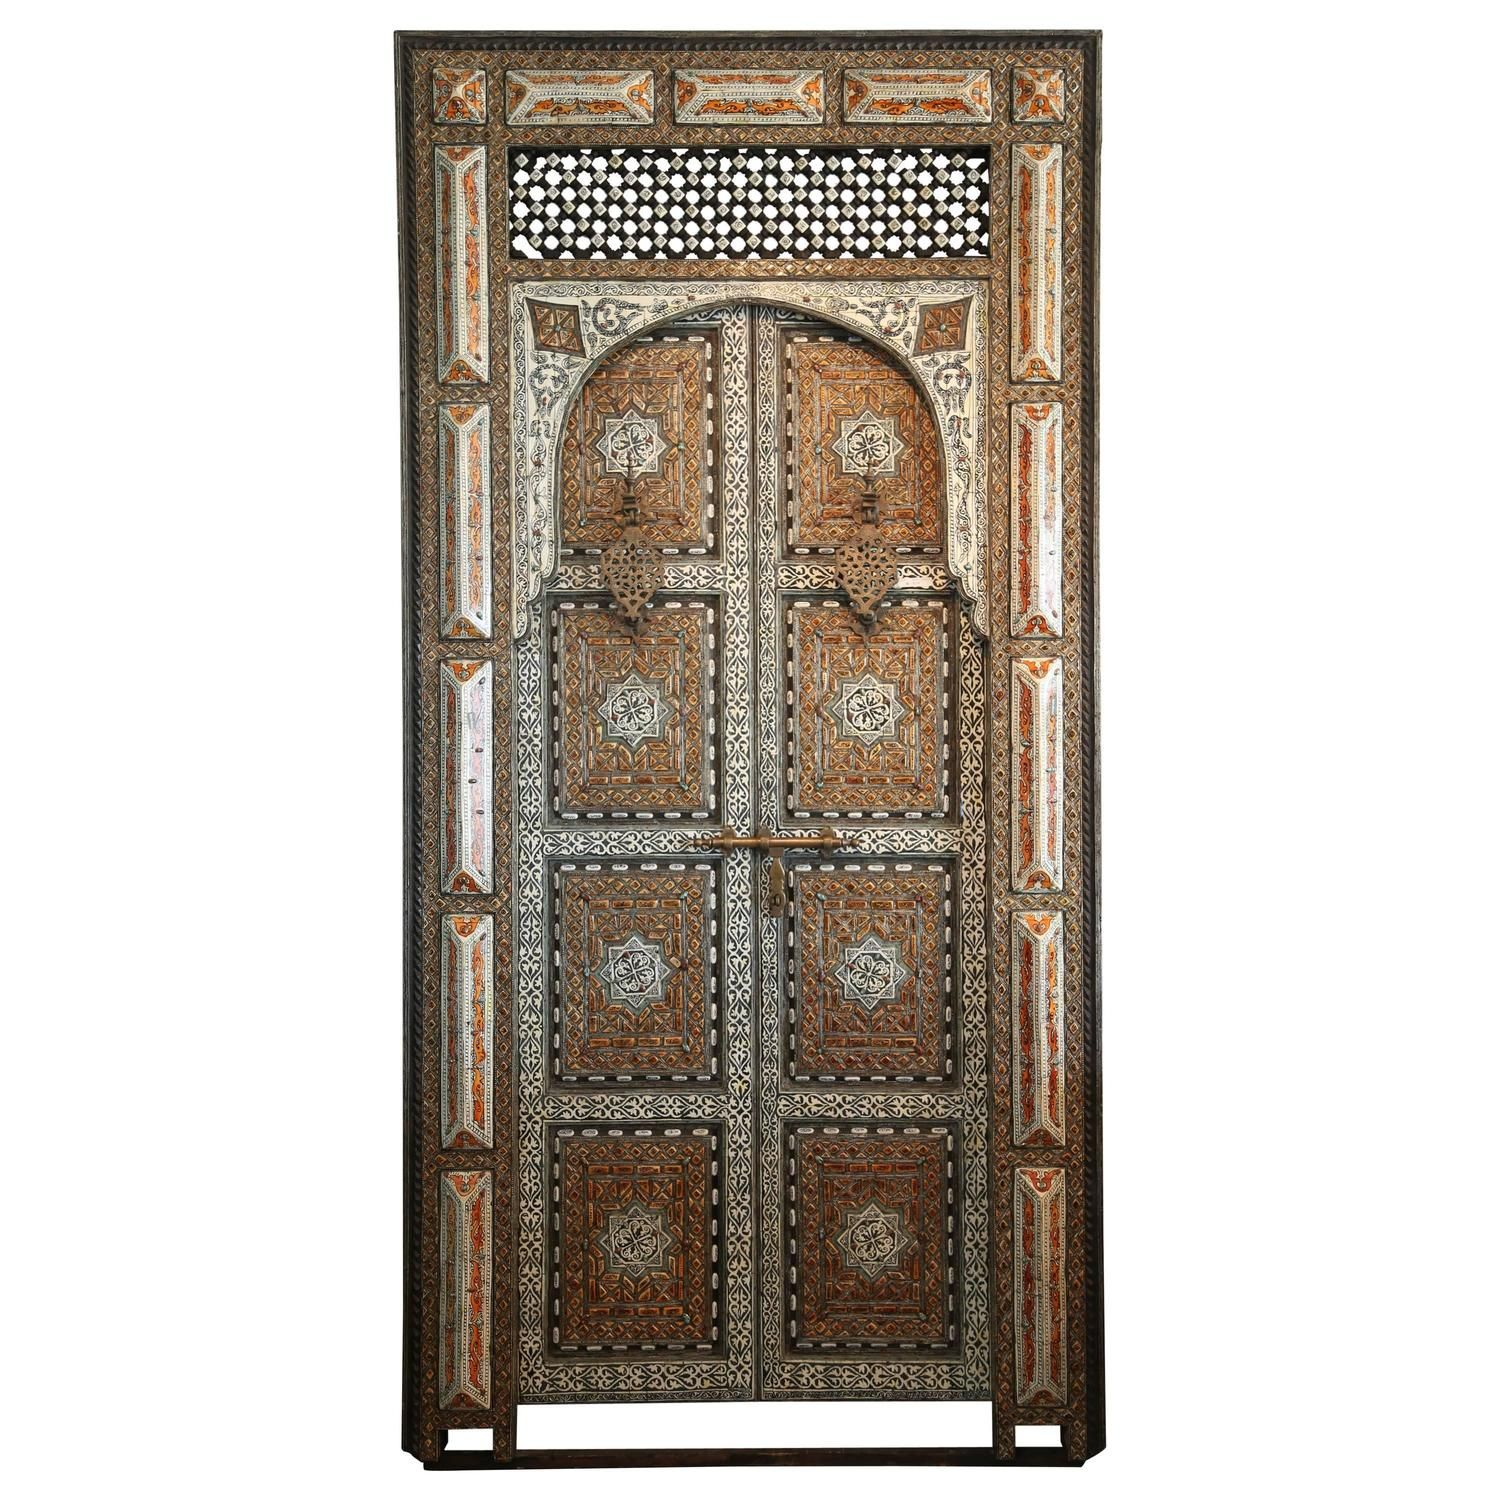 Exquisite 19th Century Moroccan Palace Door - Exquisite 19th Century Moroccan Palace Door Moroccan, Doors And